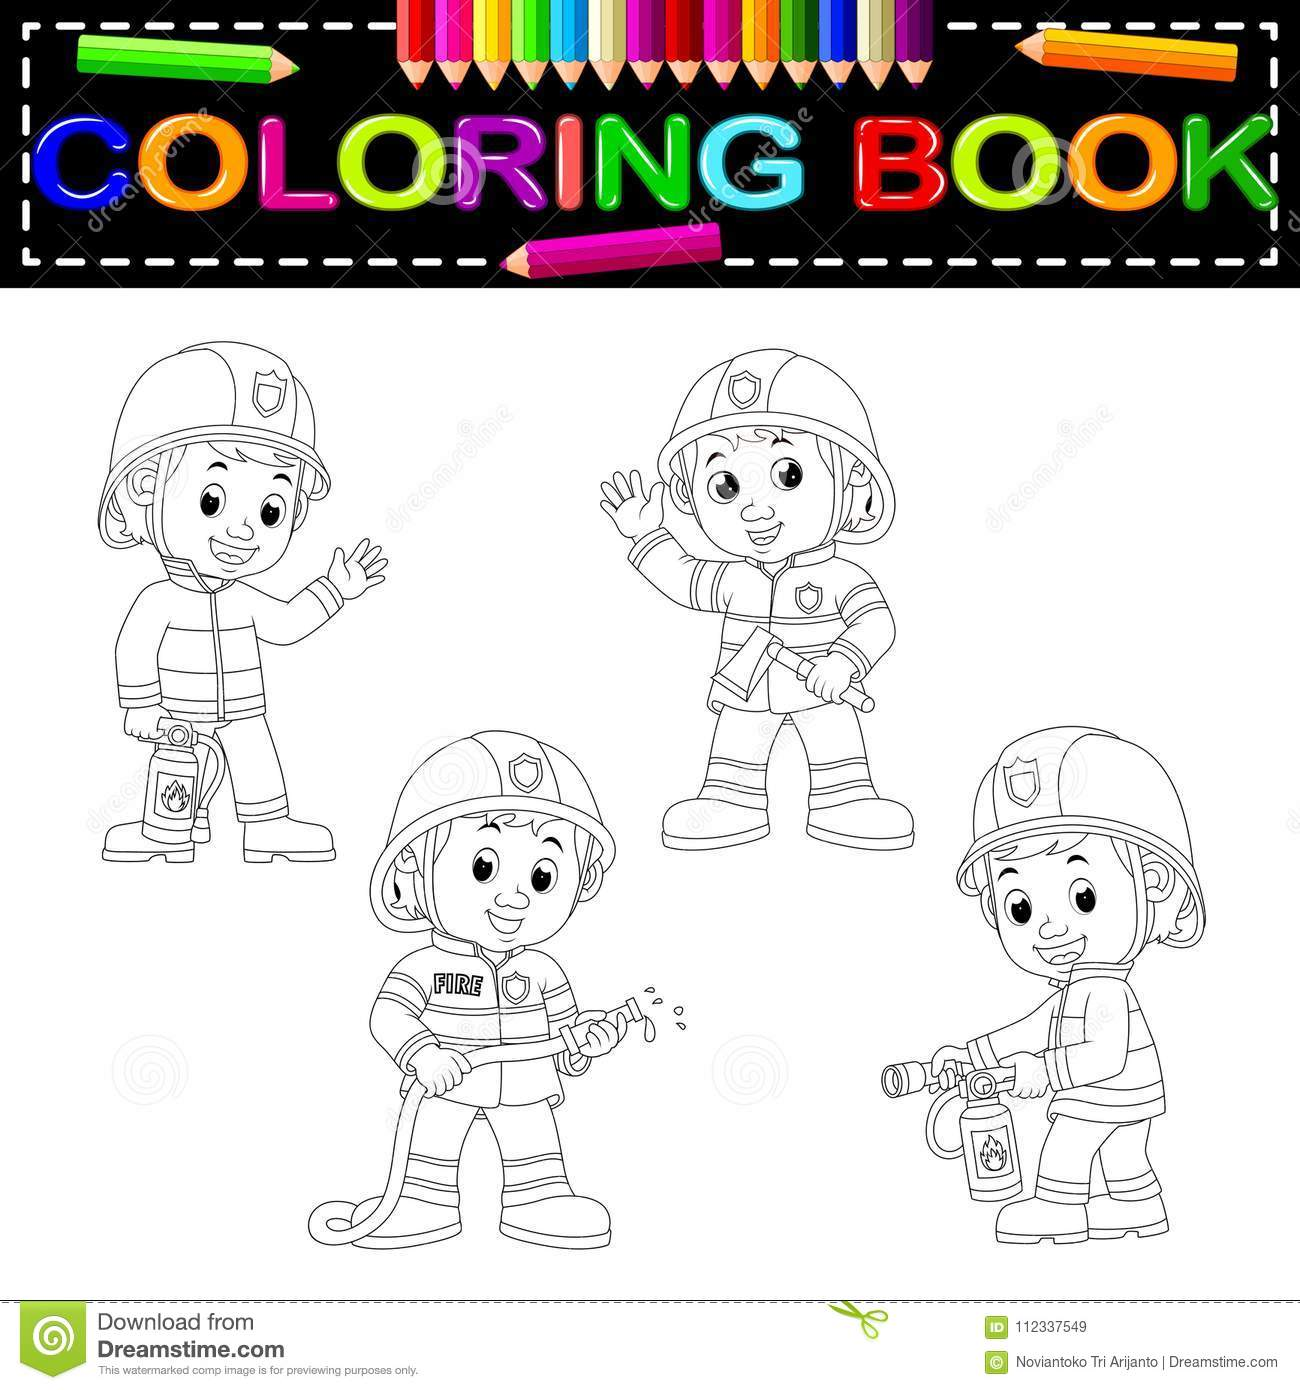 Firefighter Coloring Book Stock Illustrations 103 Firefighter Coloring Book Stock Illustrations Vectors Clipart Dreamstime